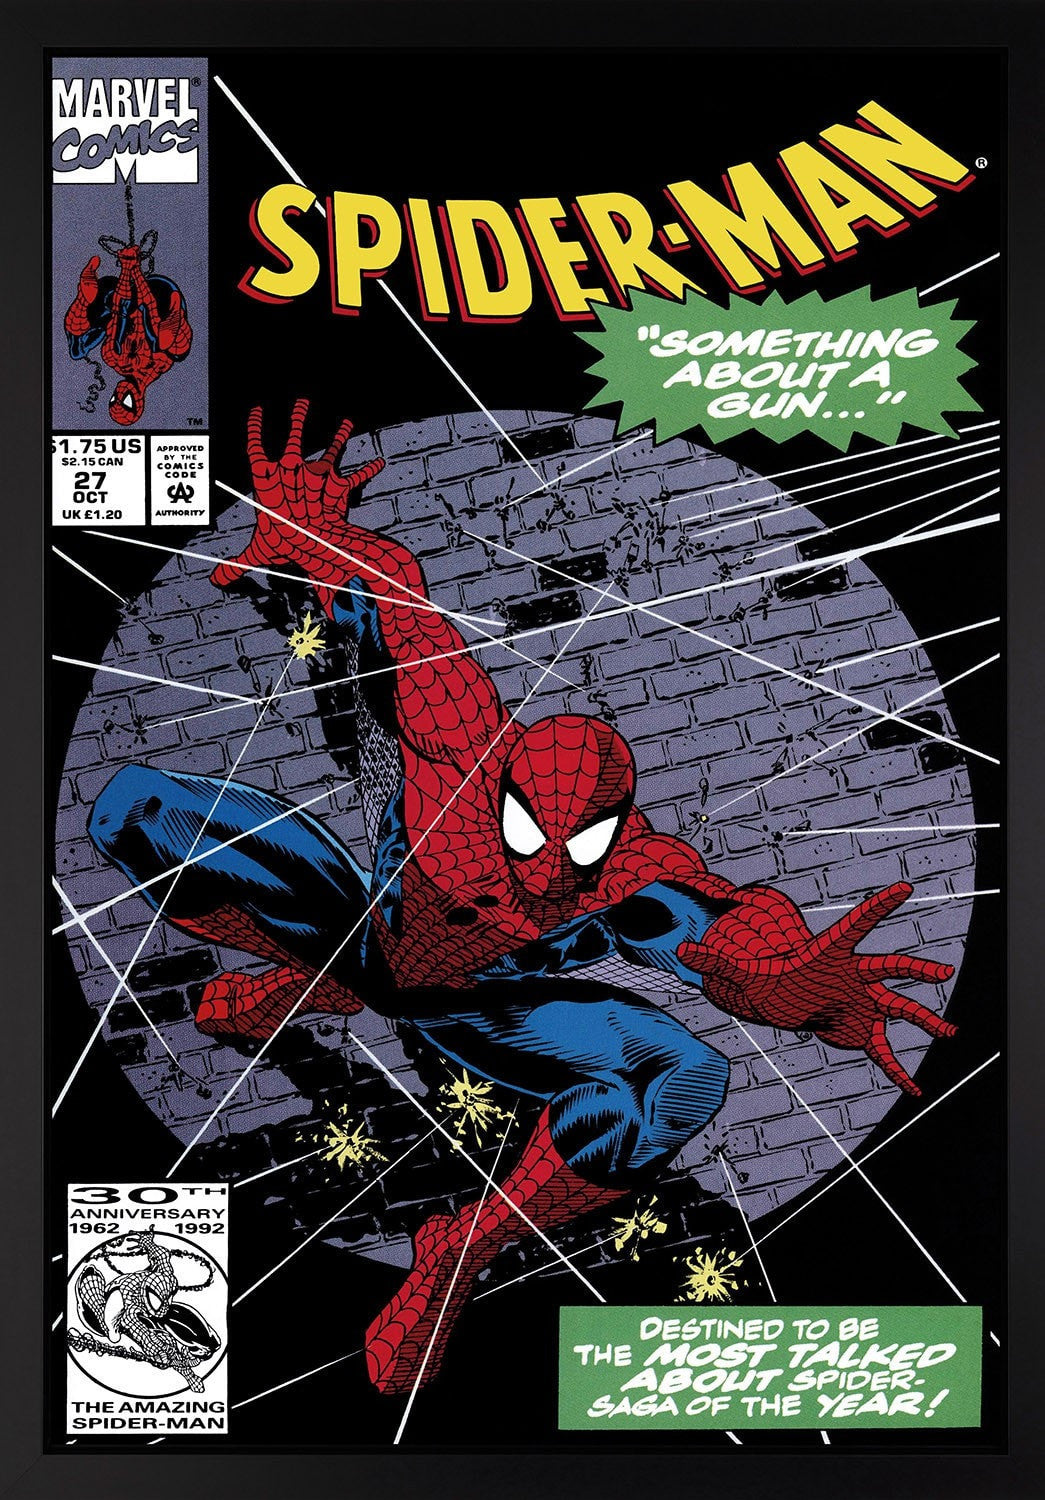 Spider-Man #27 - Something About A Gun… - RARE Stan Lee